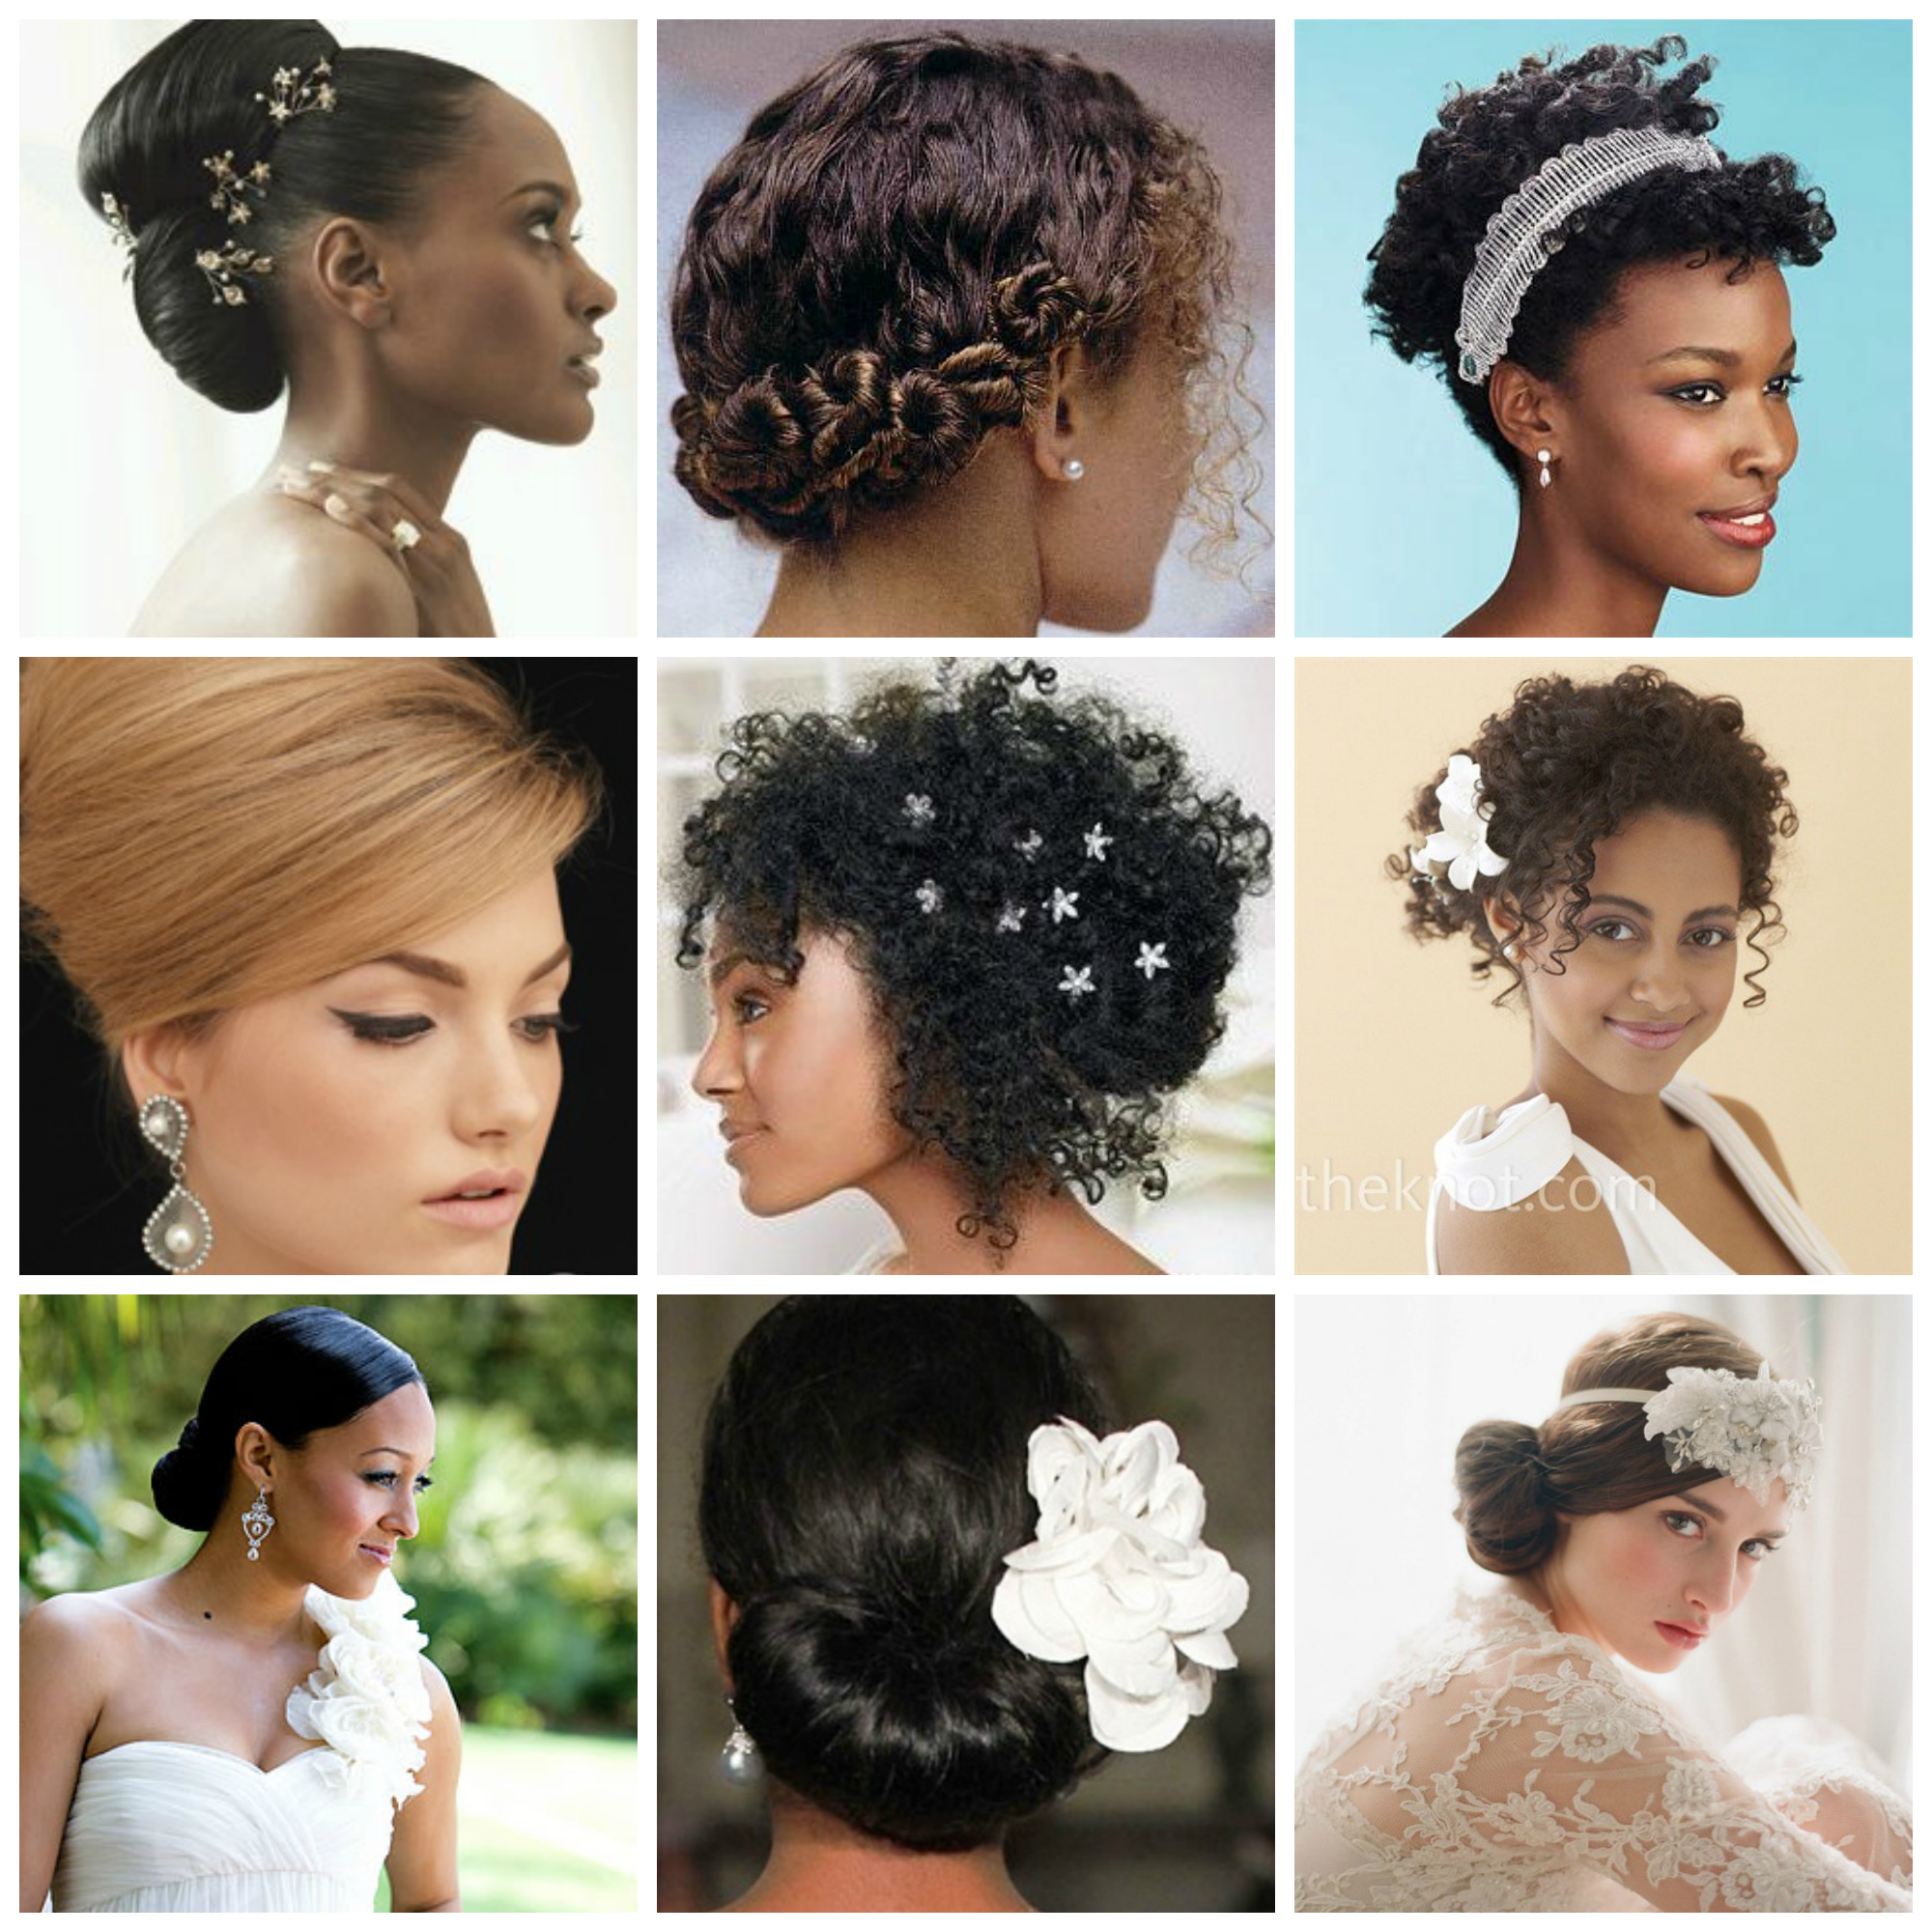 Wedding Hairstyle For Natural Curly Hair: Wedding Hairstyle Ideas For Curly Hair